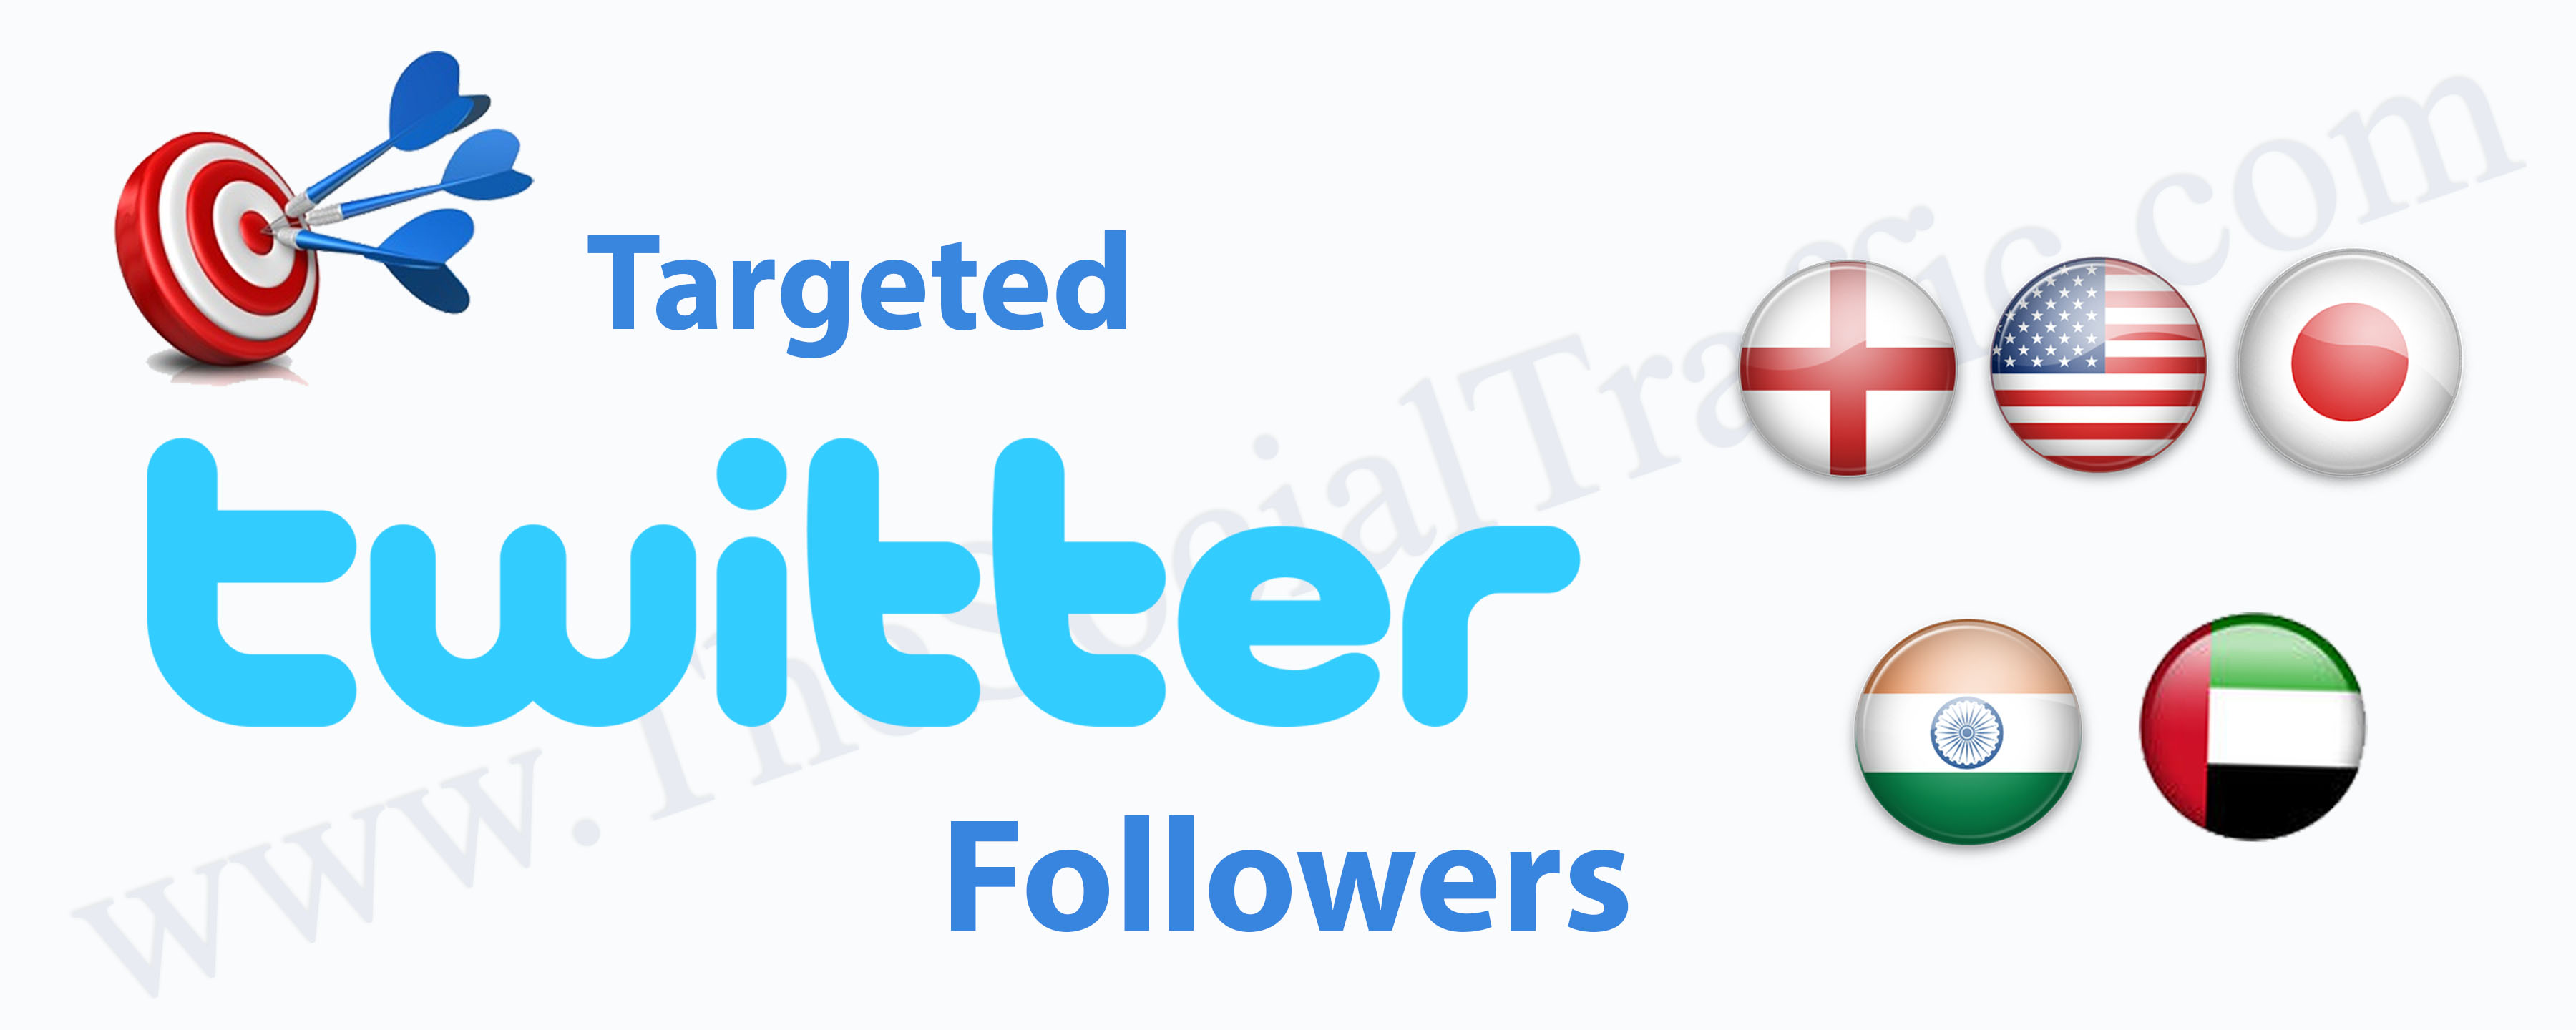 Buy Targeted Twitter followers | Real Targeted Twitter Followers